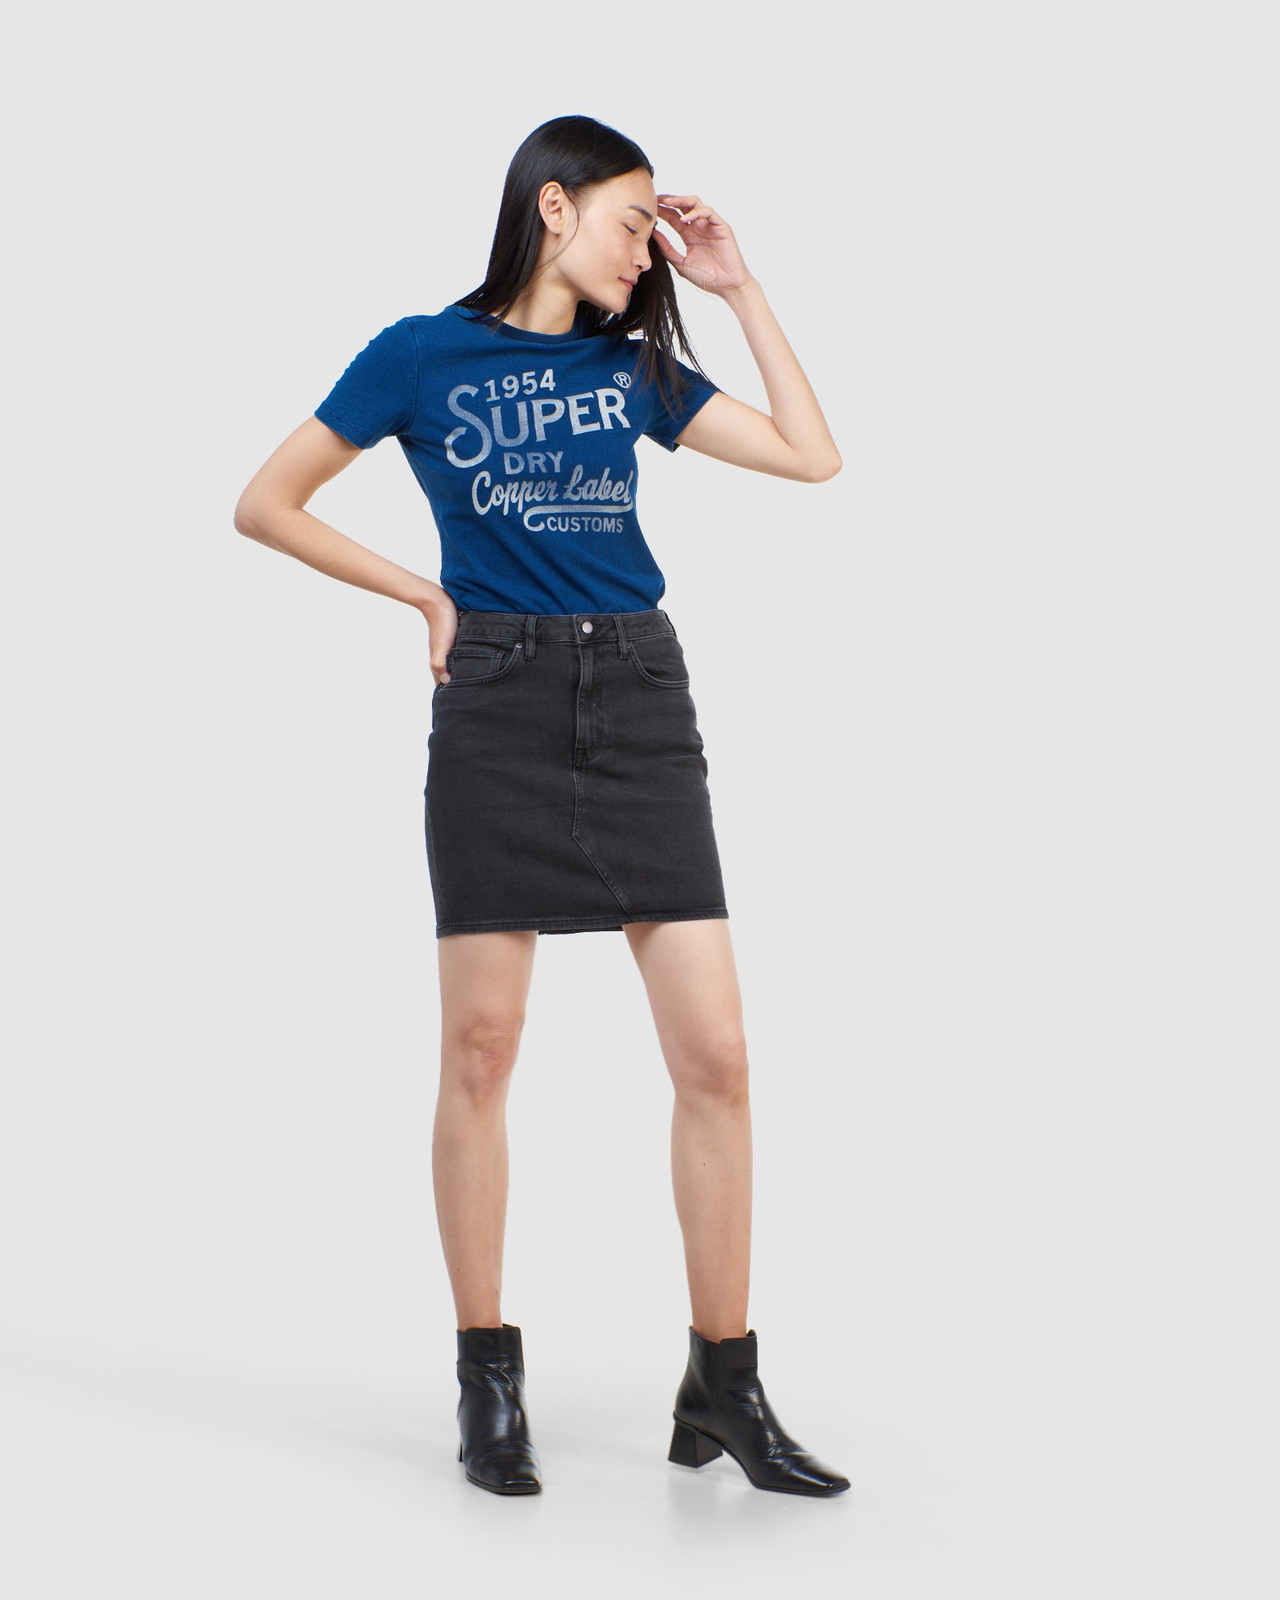 Superdry Womens COPPER LABEL TEE Blue Printed T Shirts 1